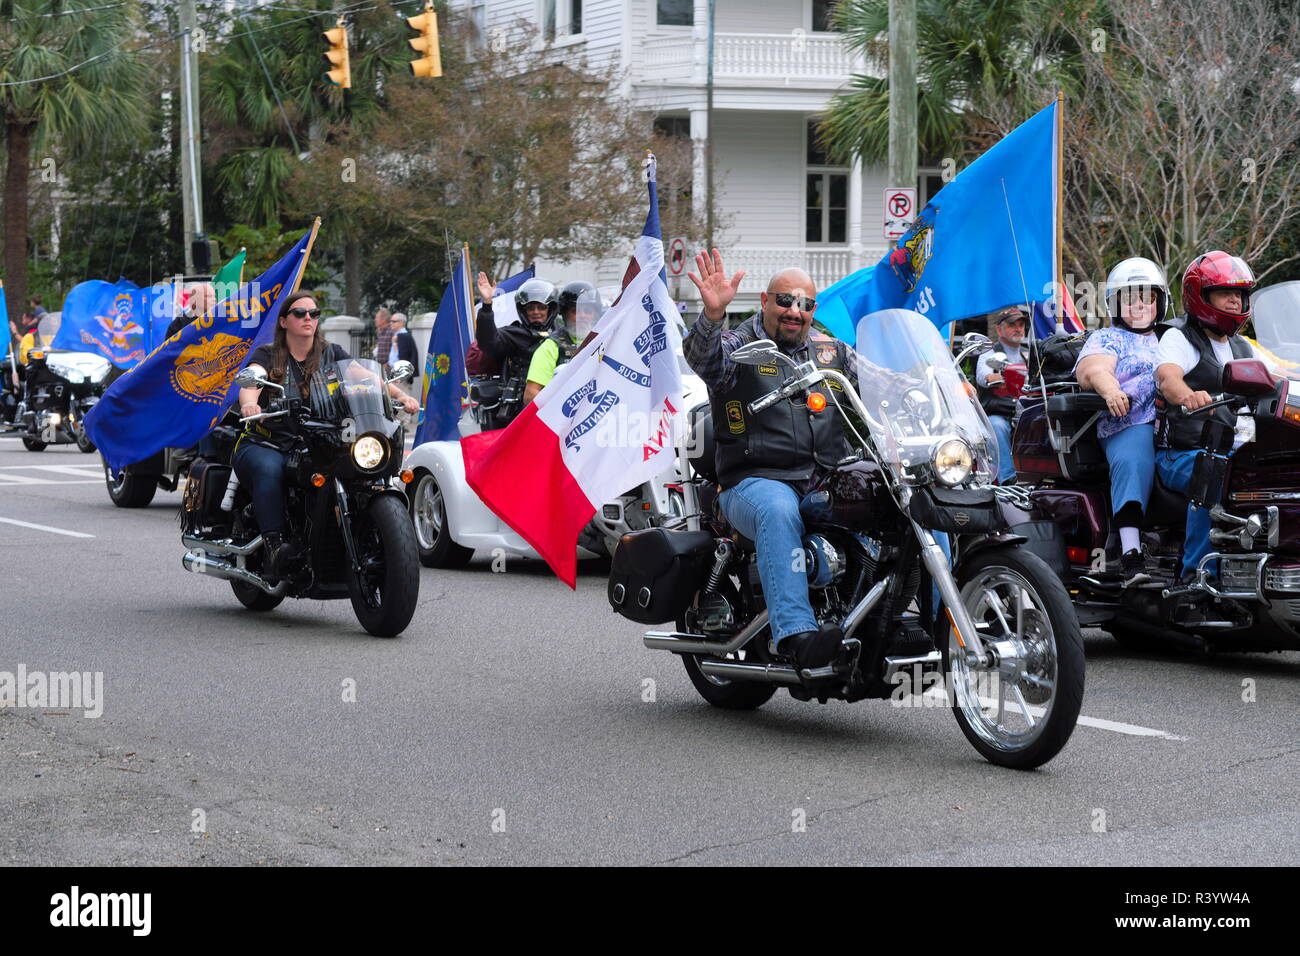 U.S. Veterans Day Parade of Motorcycles with Flags Flying - Stock Image